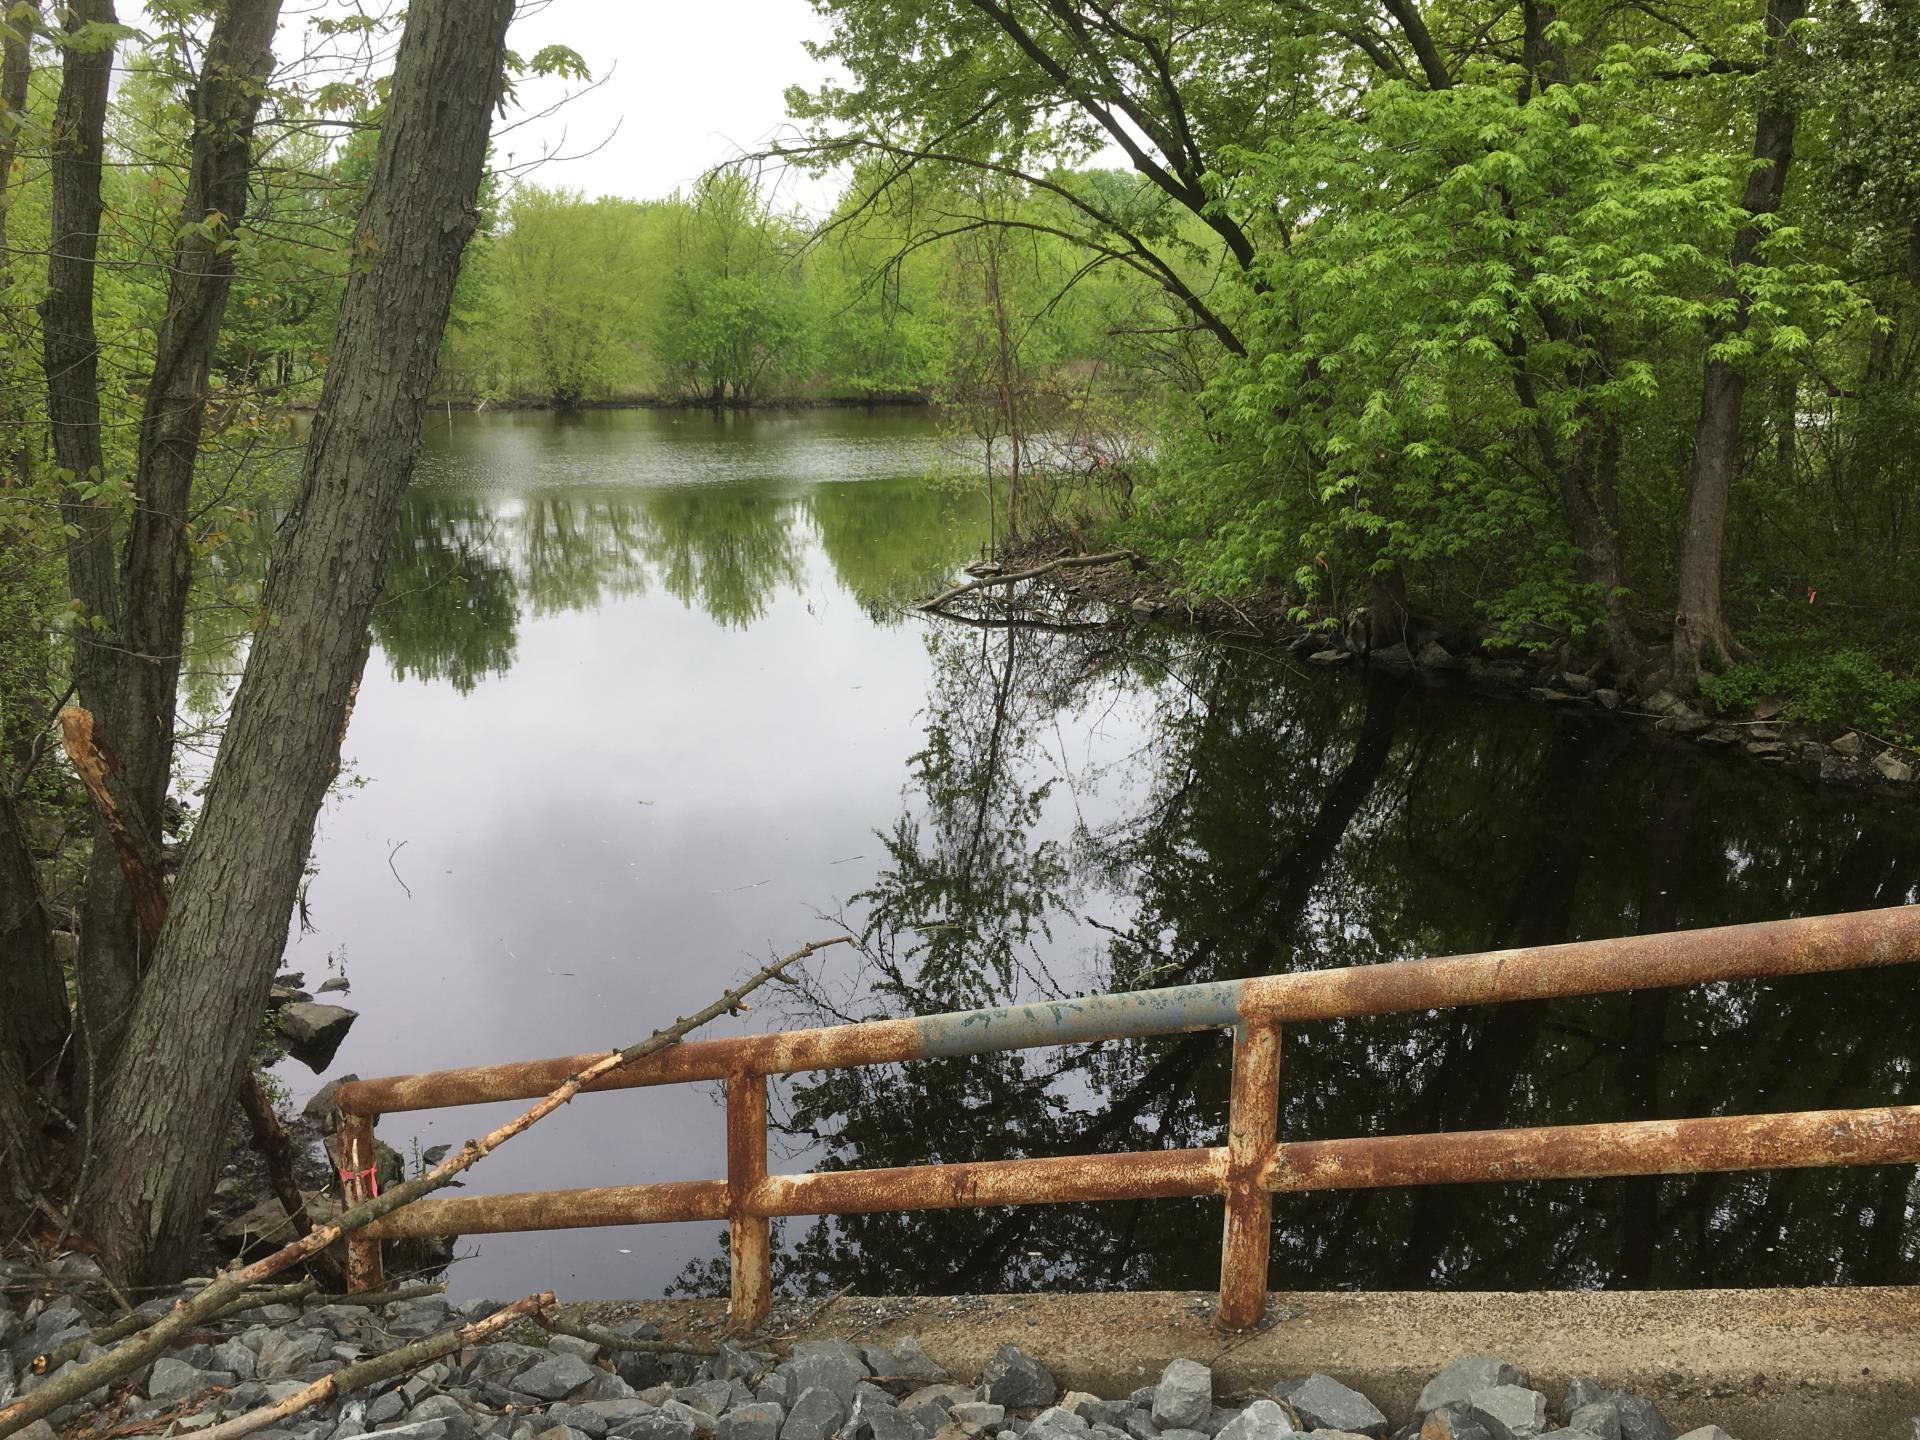 This natural area has minimal access from the Providence Highway